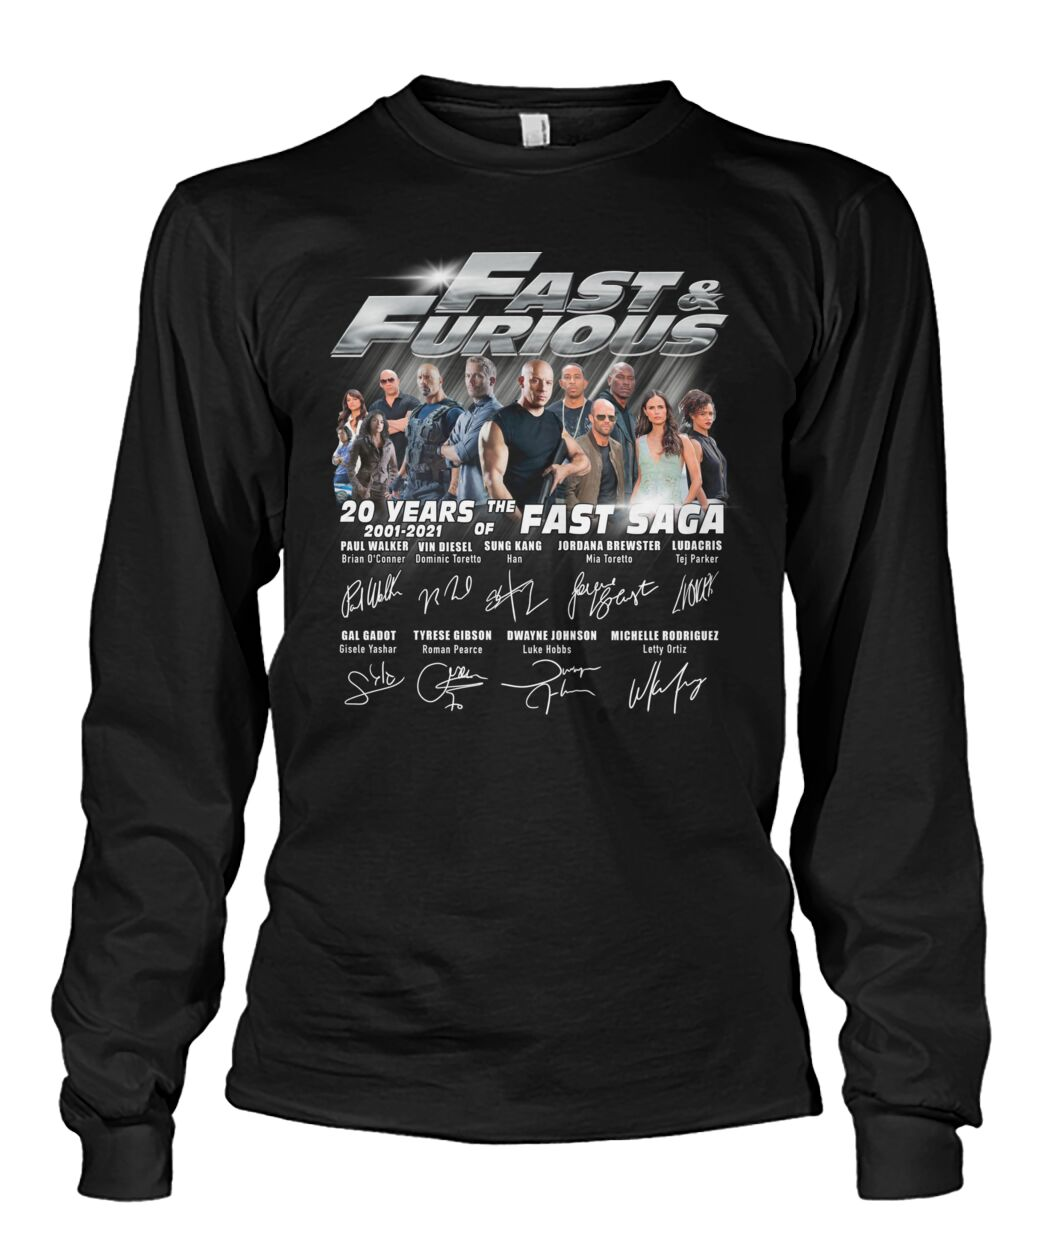 Fast and furious 20 years 2001 2021 of the fast saga shirt 13